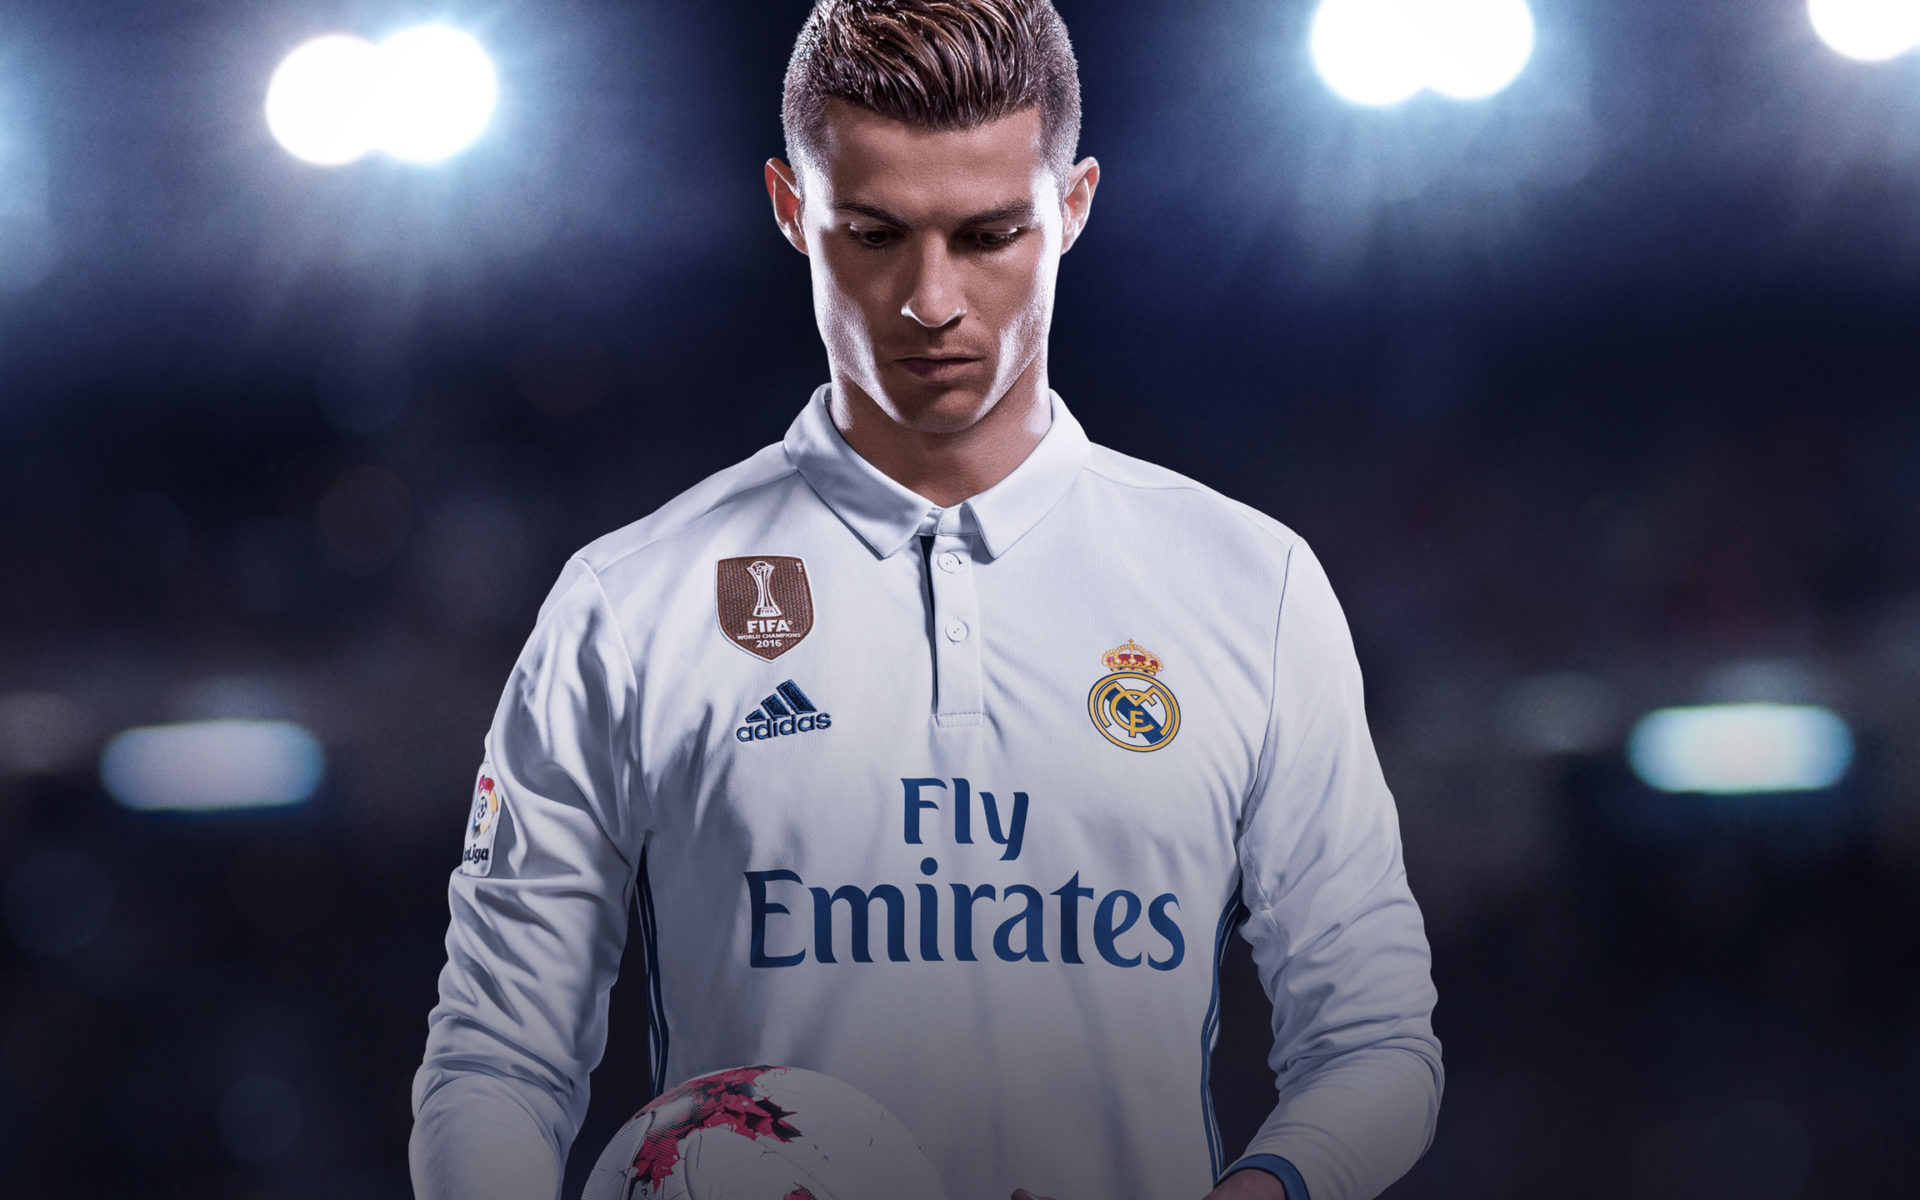 cristiano ronaldo hd wallpaper theme - sports fan tab